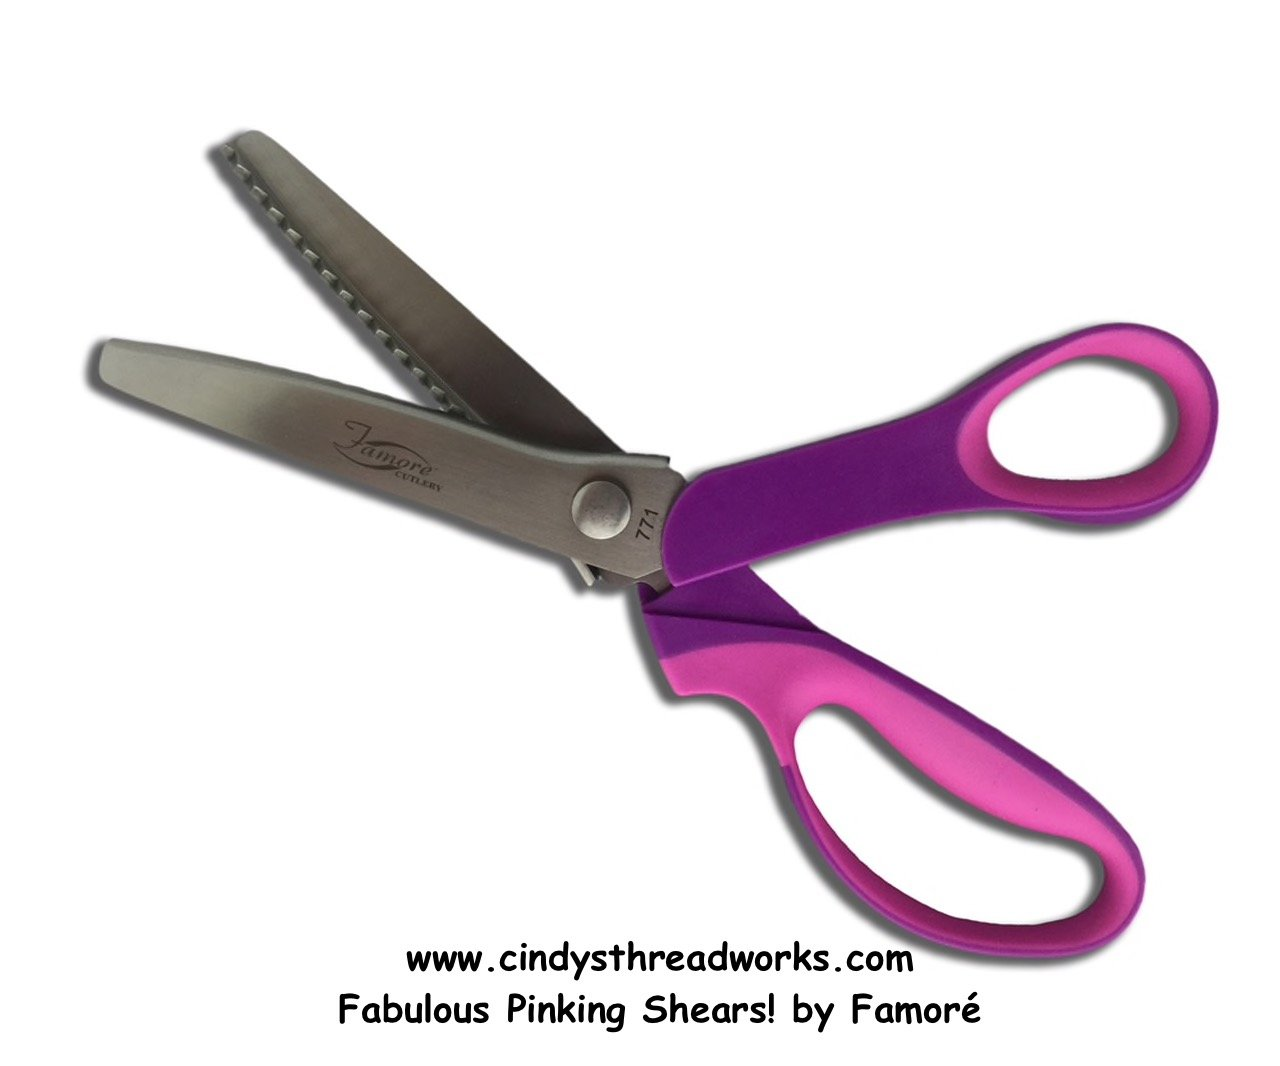 Famore Pinking Shears!